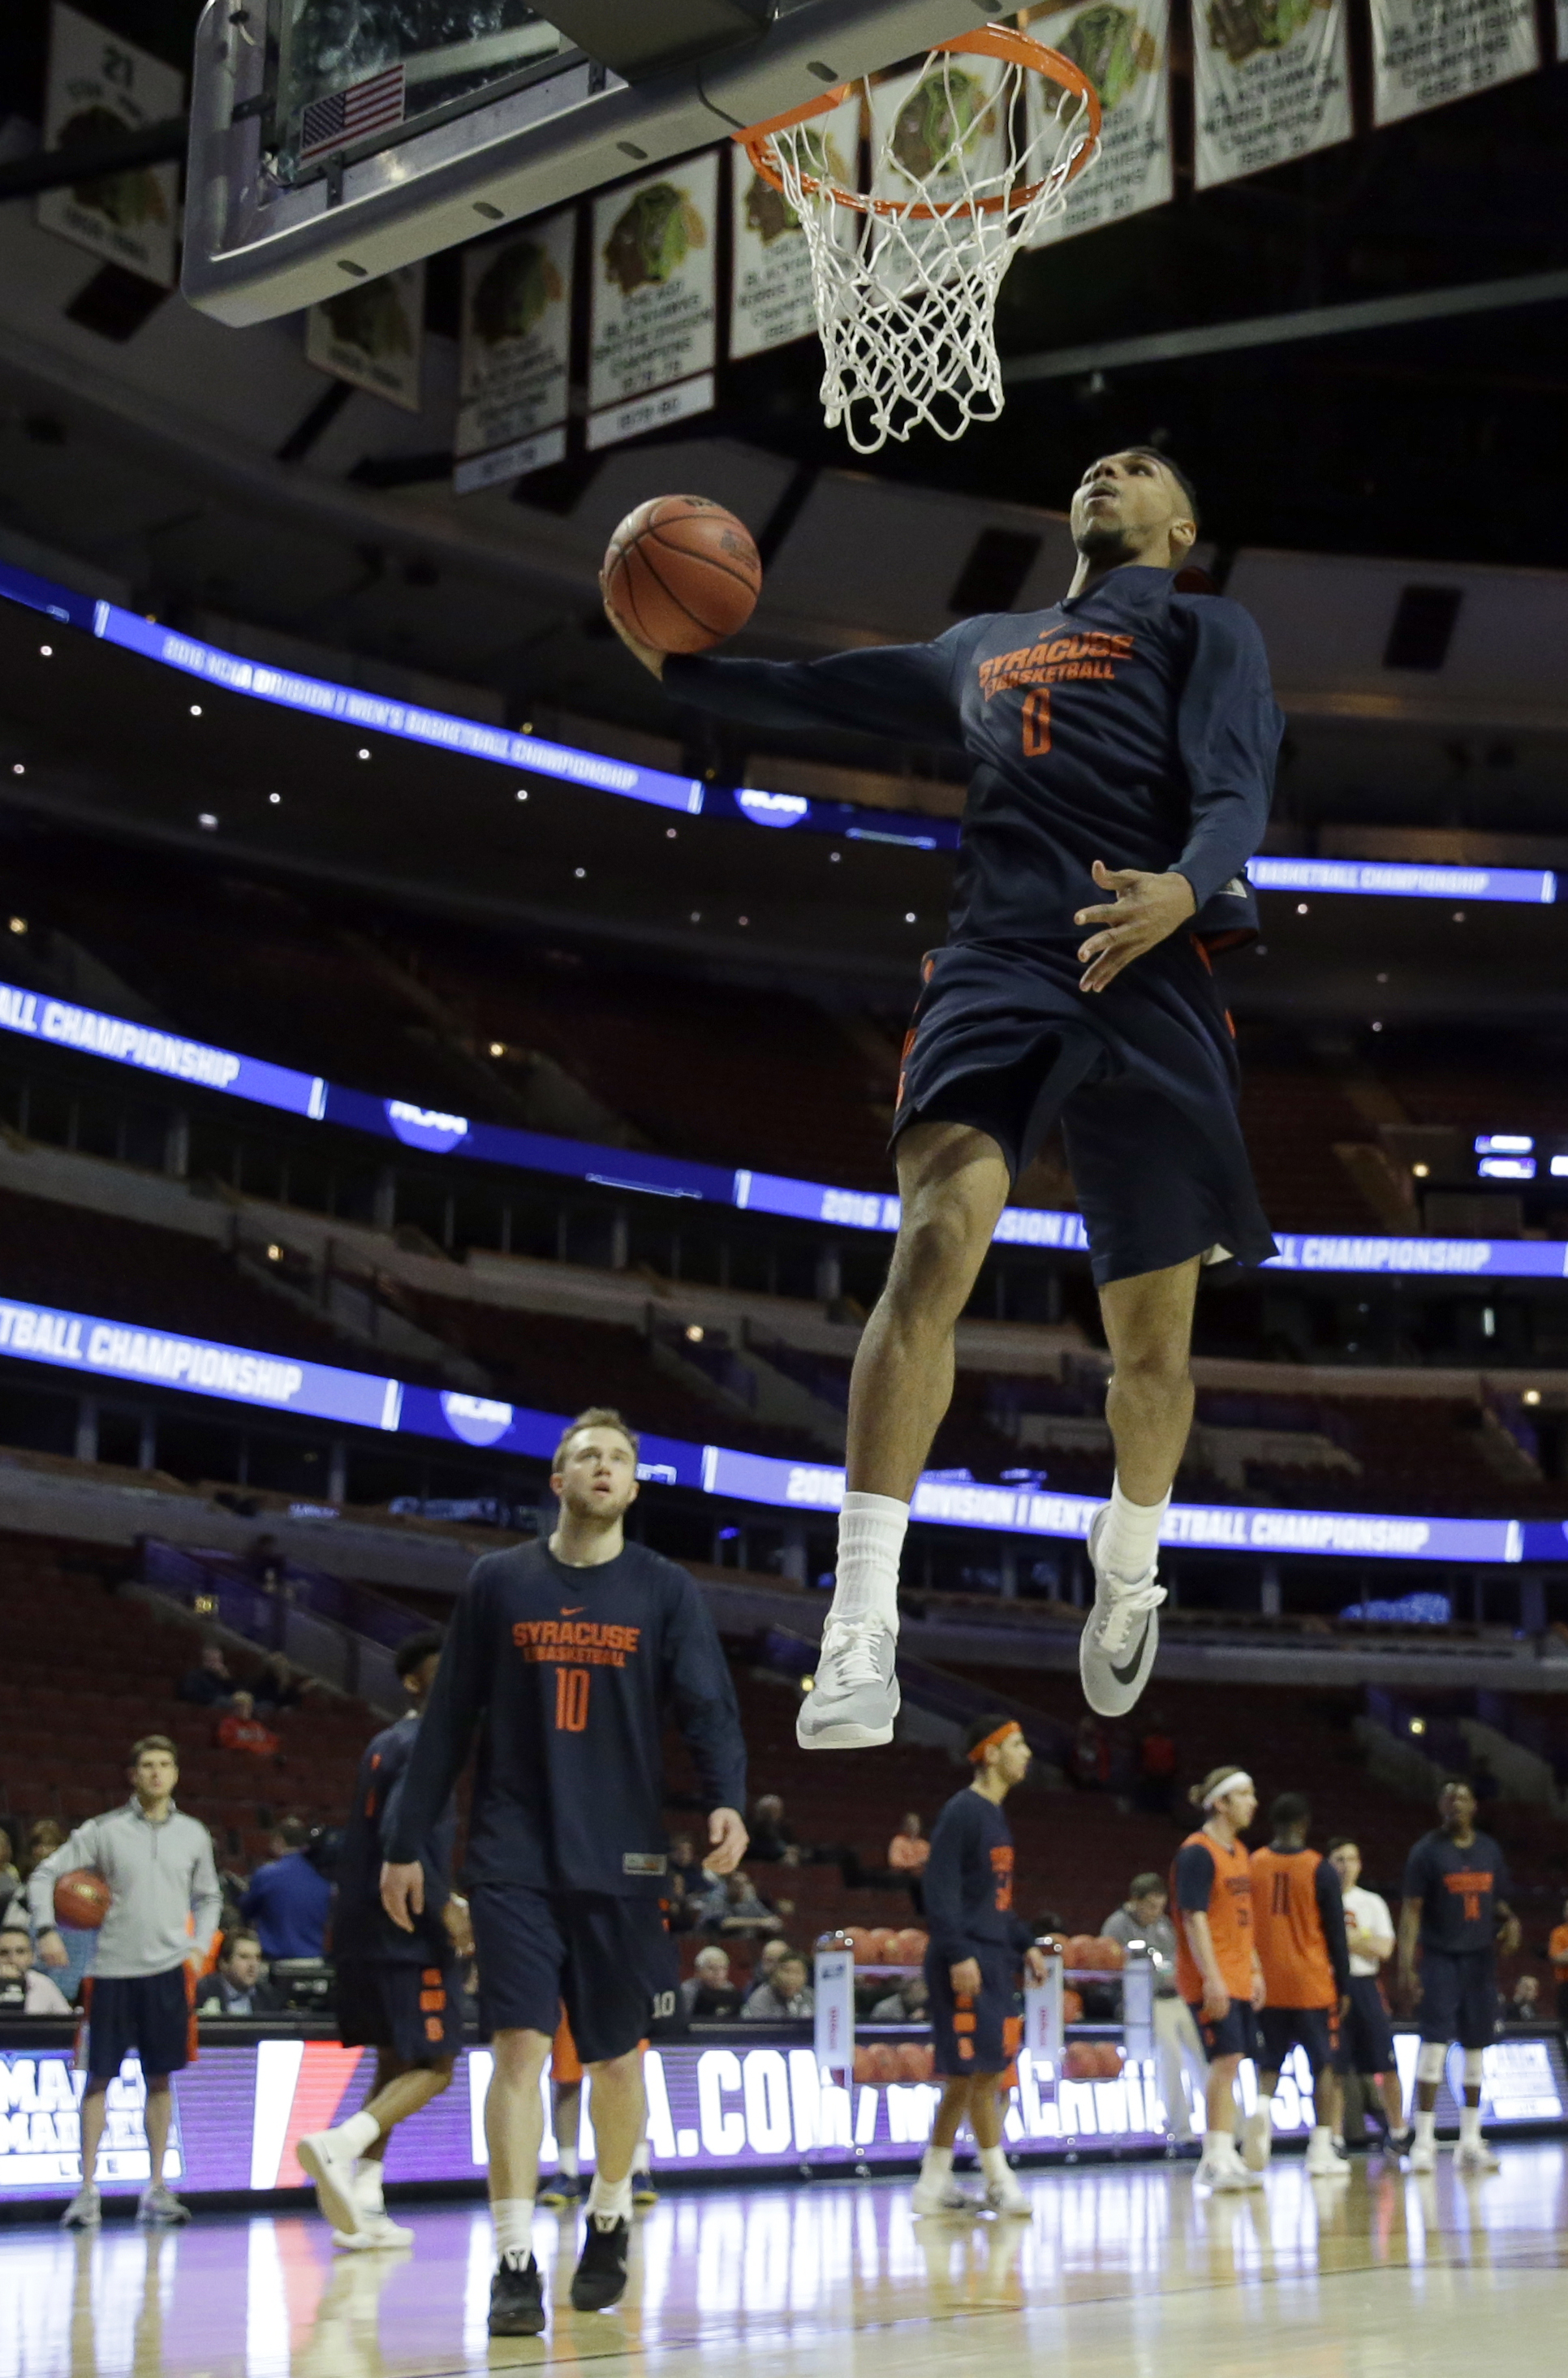 Syracuse's Michael Gbinije (0) goes up for a shot during college basketball practice, Thursday, March 24, 2016, in Chicago. Syracuse plays against Gonzaga in a regional semifinal game in the NCAA Tournament on Friday. (AP Photo/Nam Y. Huh)